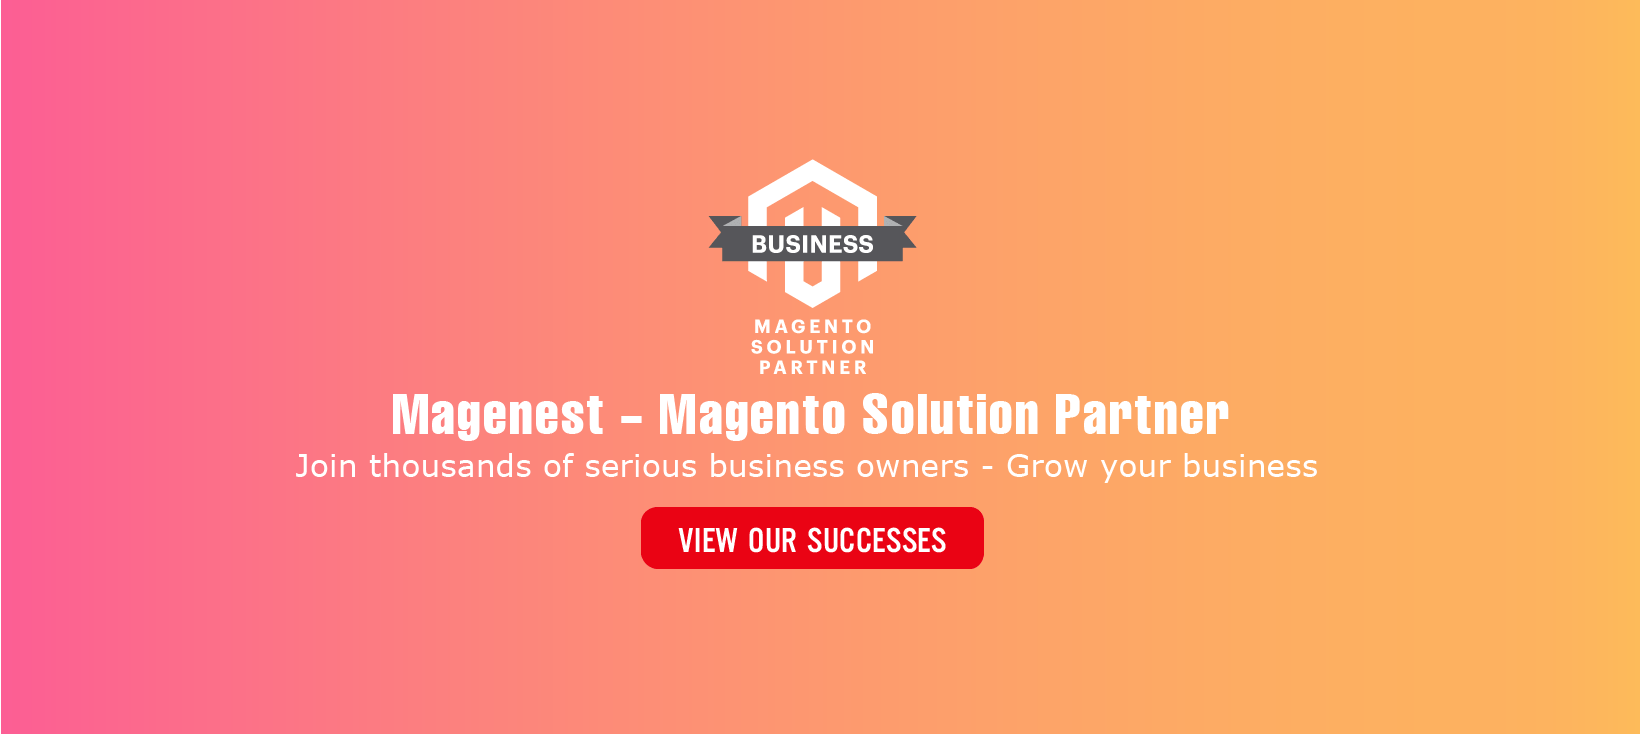 Magenest Officially Becomes A Magento Solution Partner